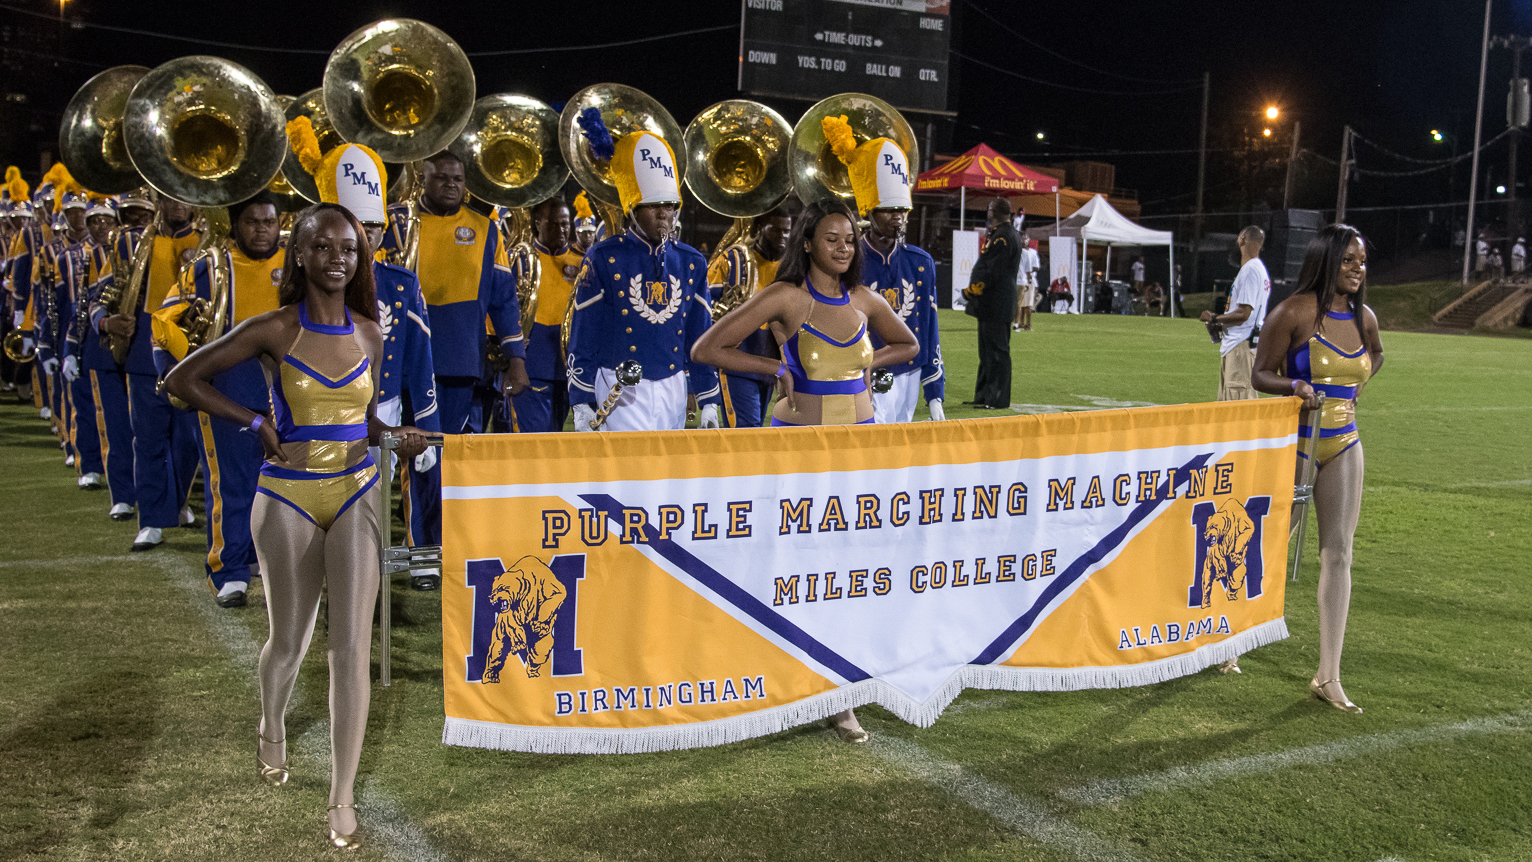 Queen City Battle of the Band